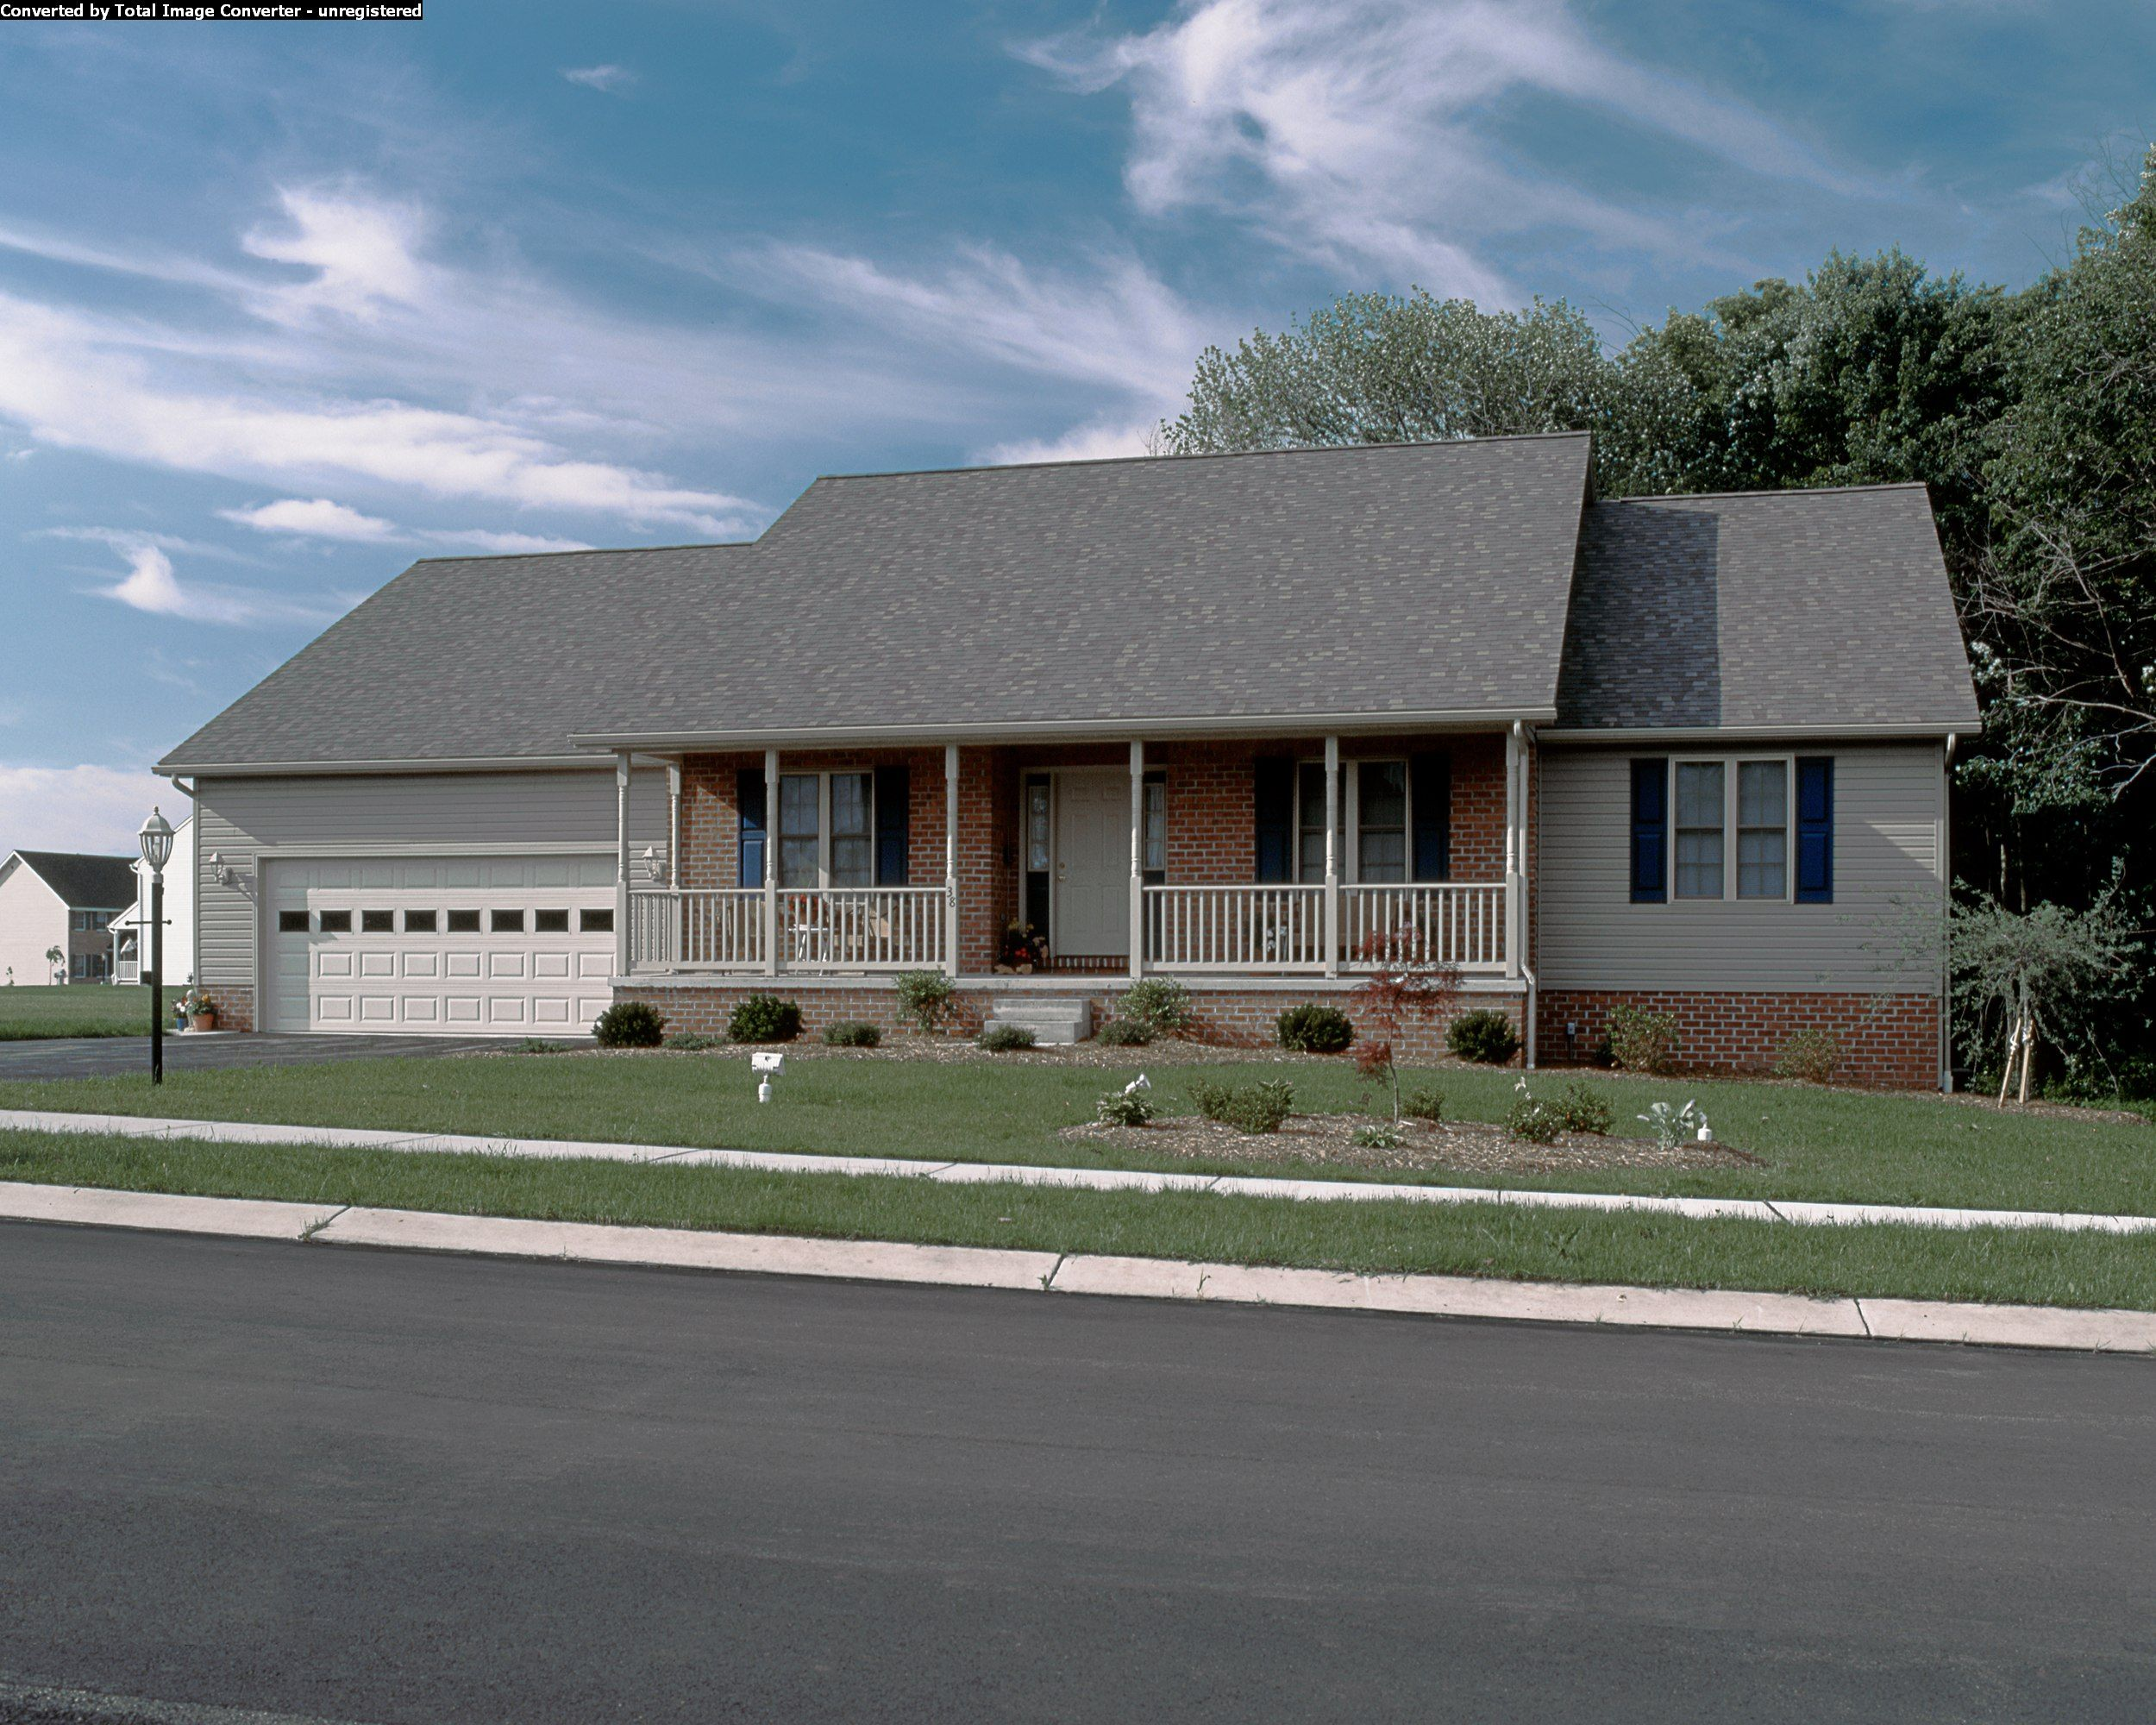 maggie lynne 2092 sq ft the maggie lynne features an open ranch the maggie lynne features an open ranch style floor plan and an inviting front porch casual living as its very best